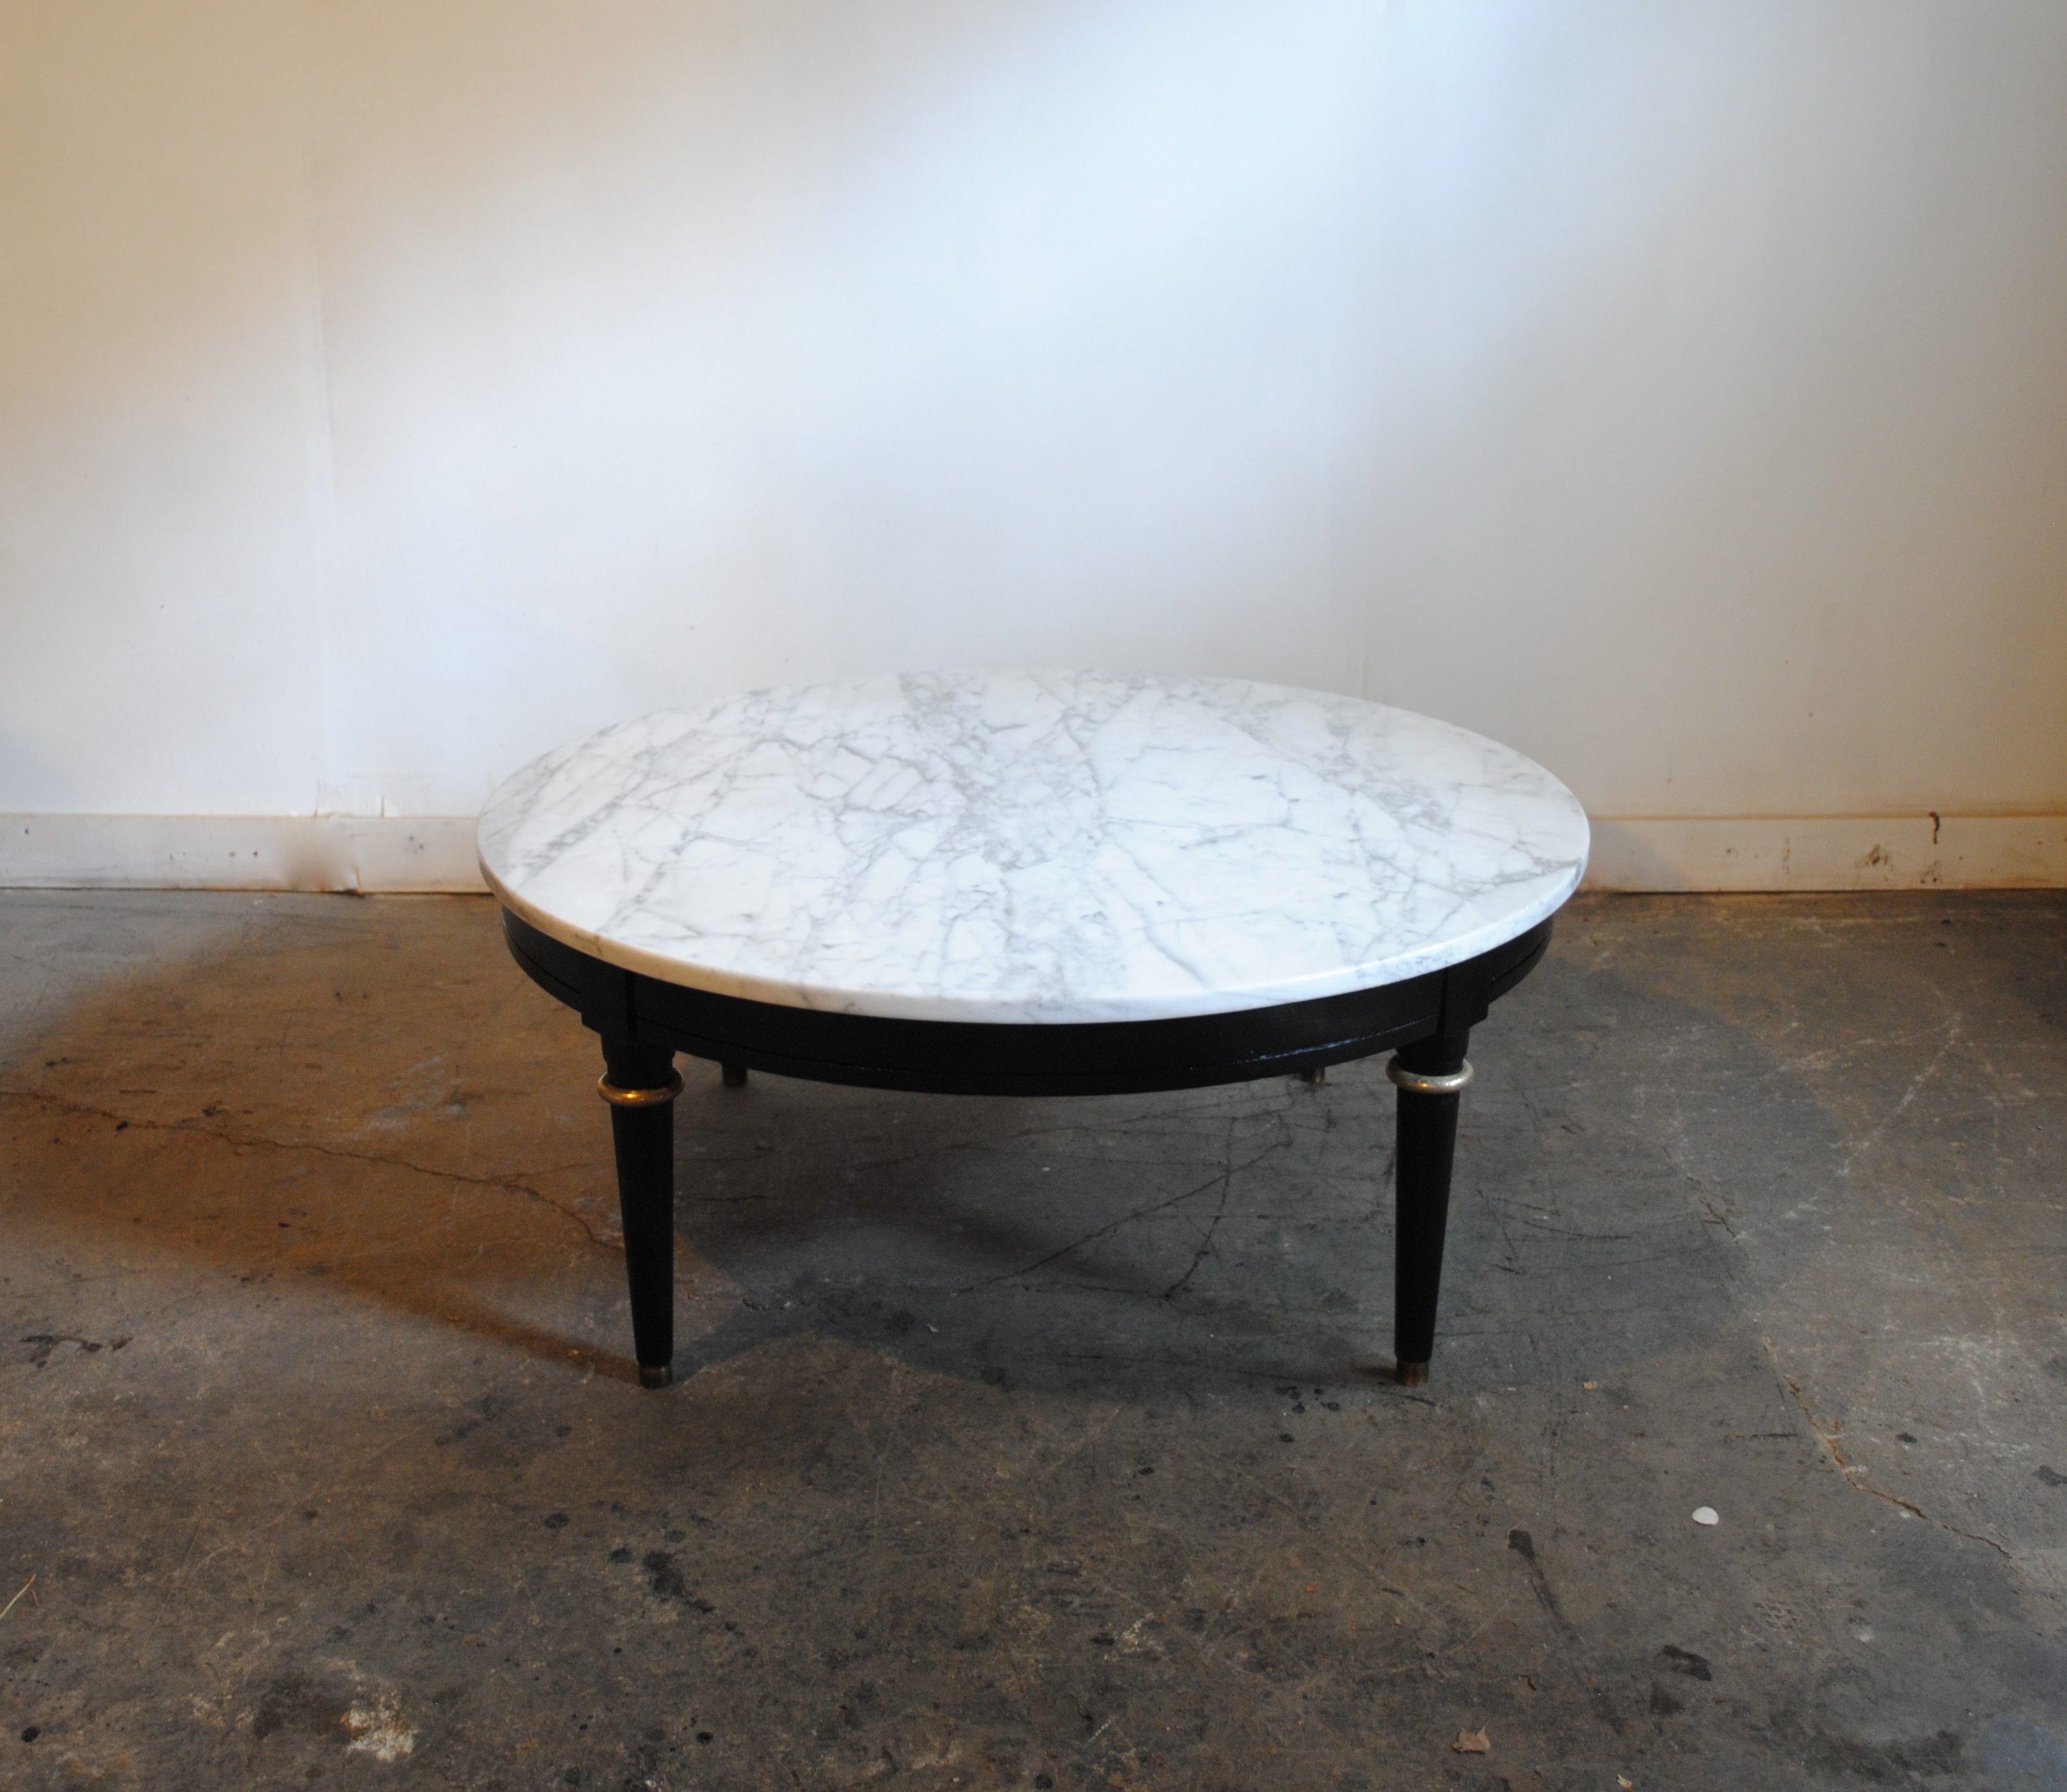 Vintage Marble Top Coffee Table. Has Black Base With Brass Accents. Marble  Top Made In Italy. Dimensions Are 36u2033 Dia X 15.25u2033 H. Please Contact Me  With Any ...